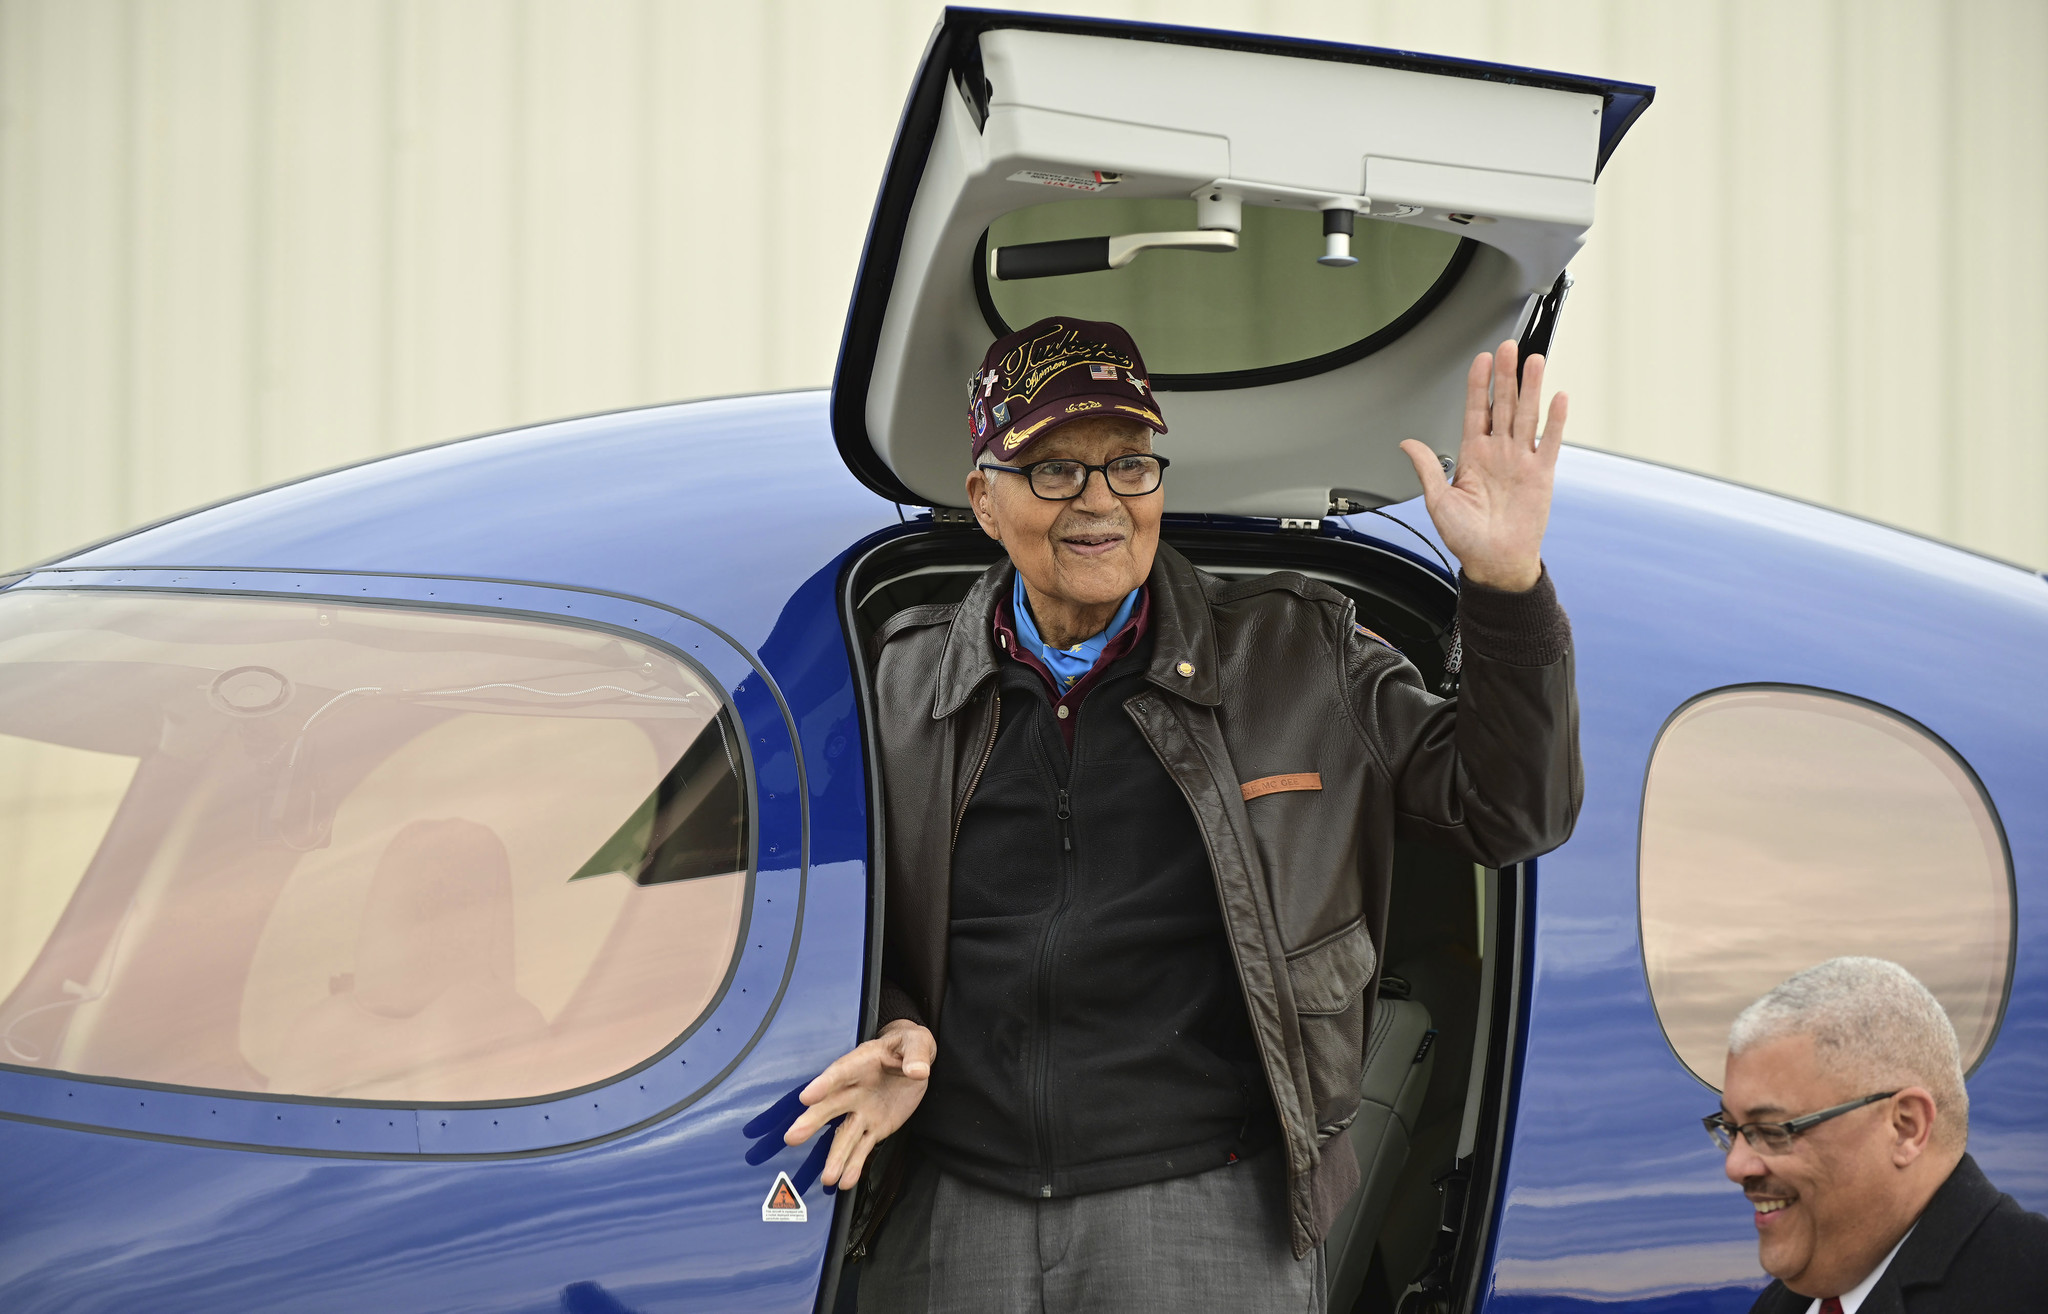 Tuskegee fighter pilot turns 100, celebrates with a return to the air